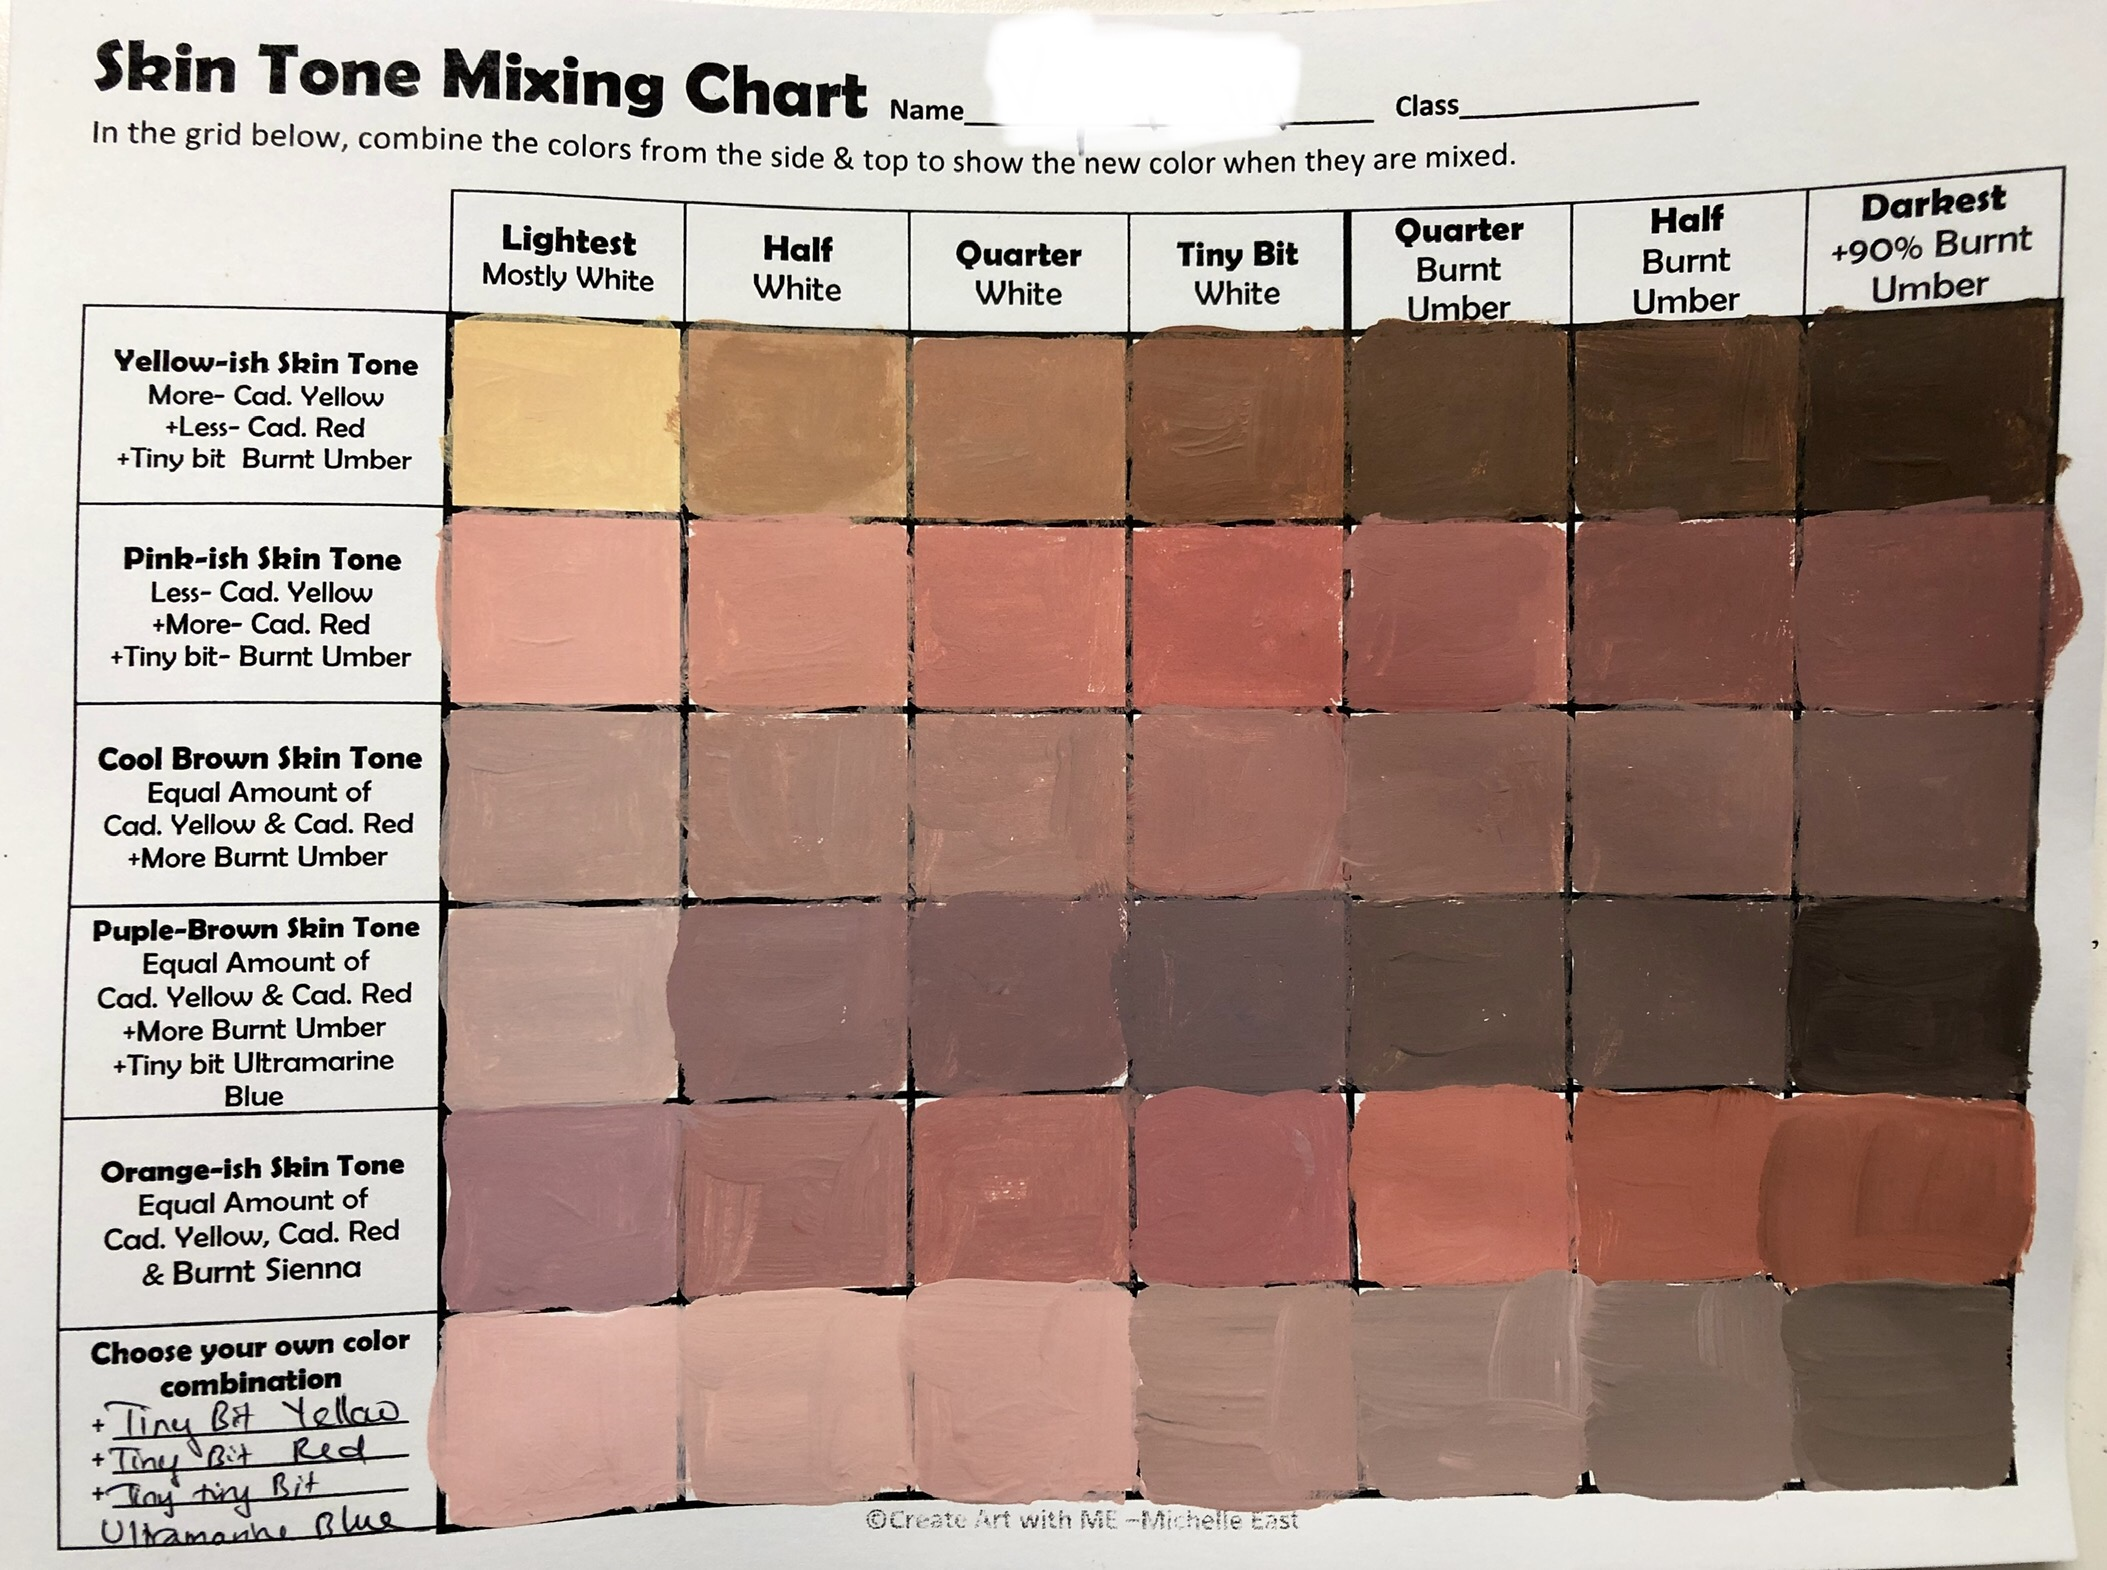 hight resolution of Skin Tone Mixing Chart Example - Create Art with ME